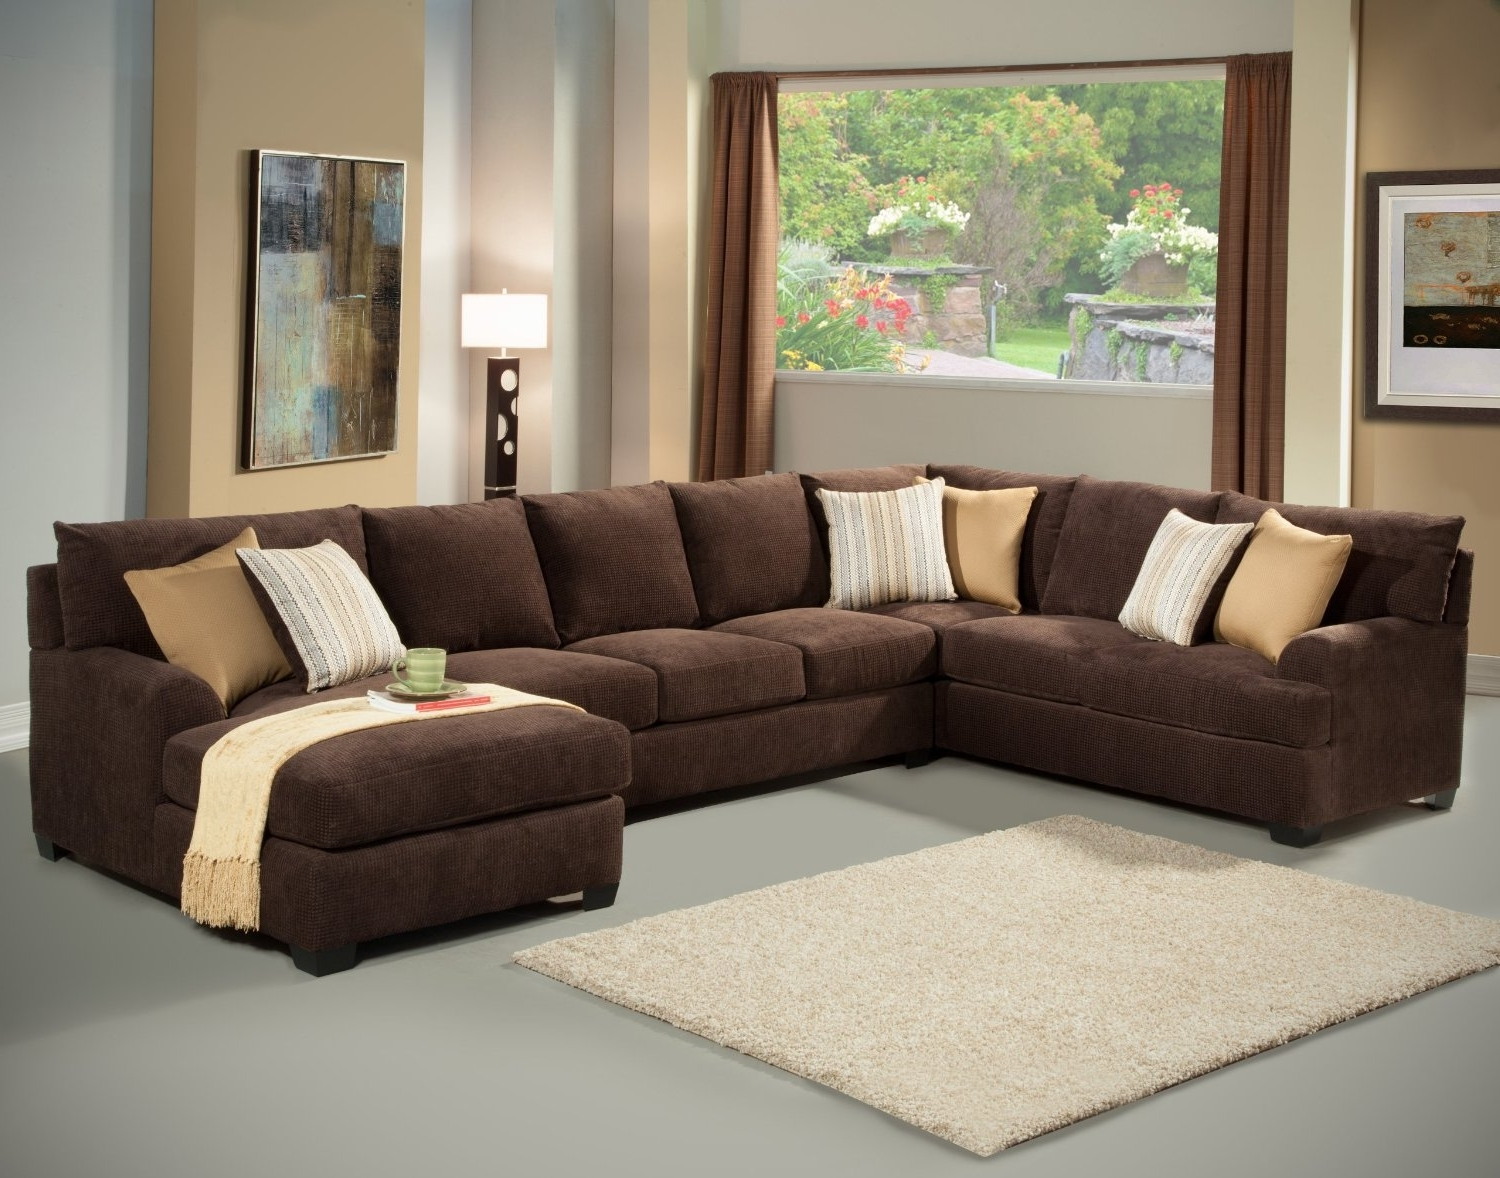 Houston Tx Sectional Sofas Inside Fashionable Awesome Large Sectional Sofa With Chaise 60 In Cheap Sectional (View 14 of 15)